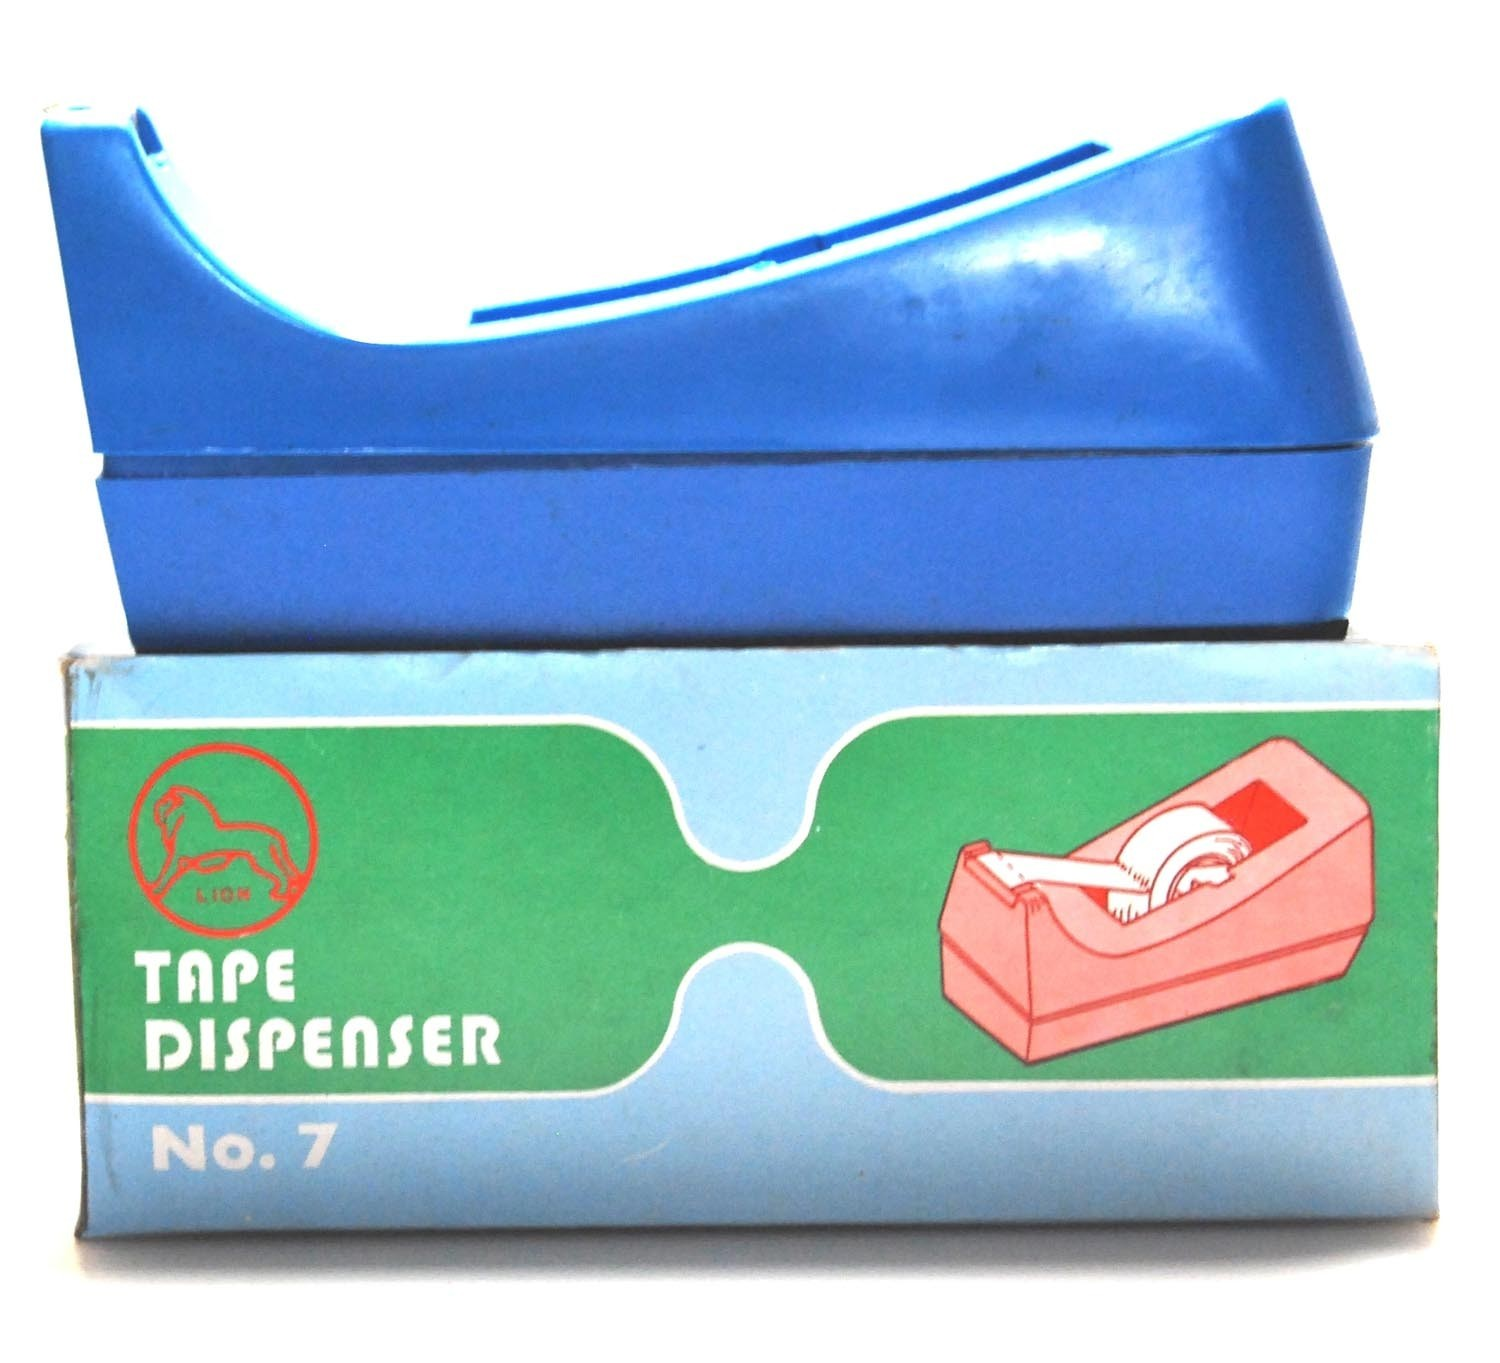 Supplier ATK Lion Tape Dispenser No.7 Harga Grosir